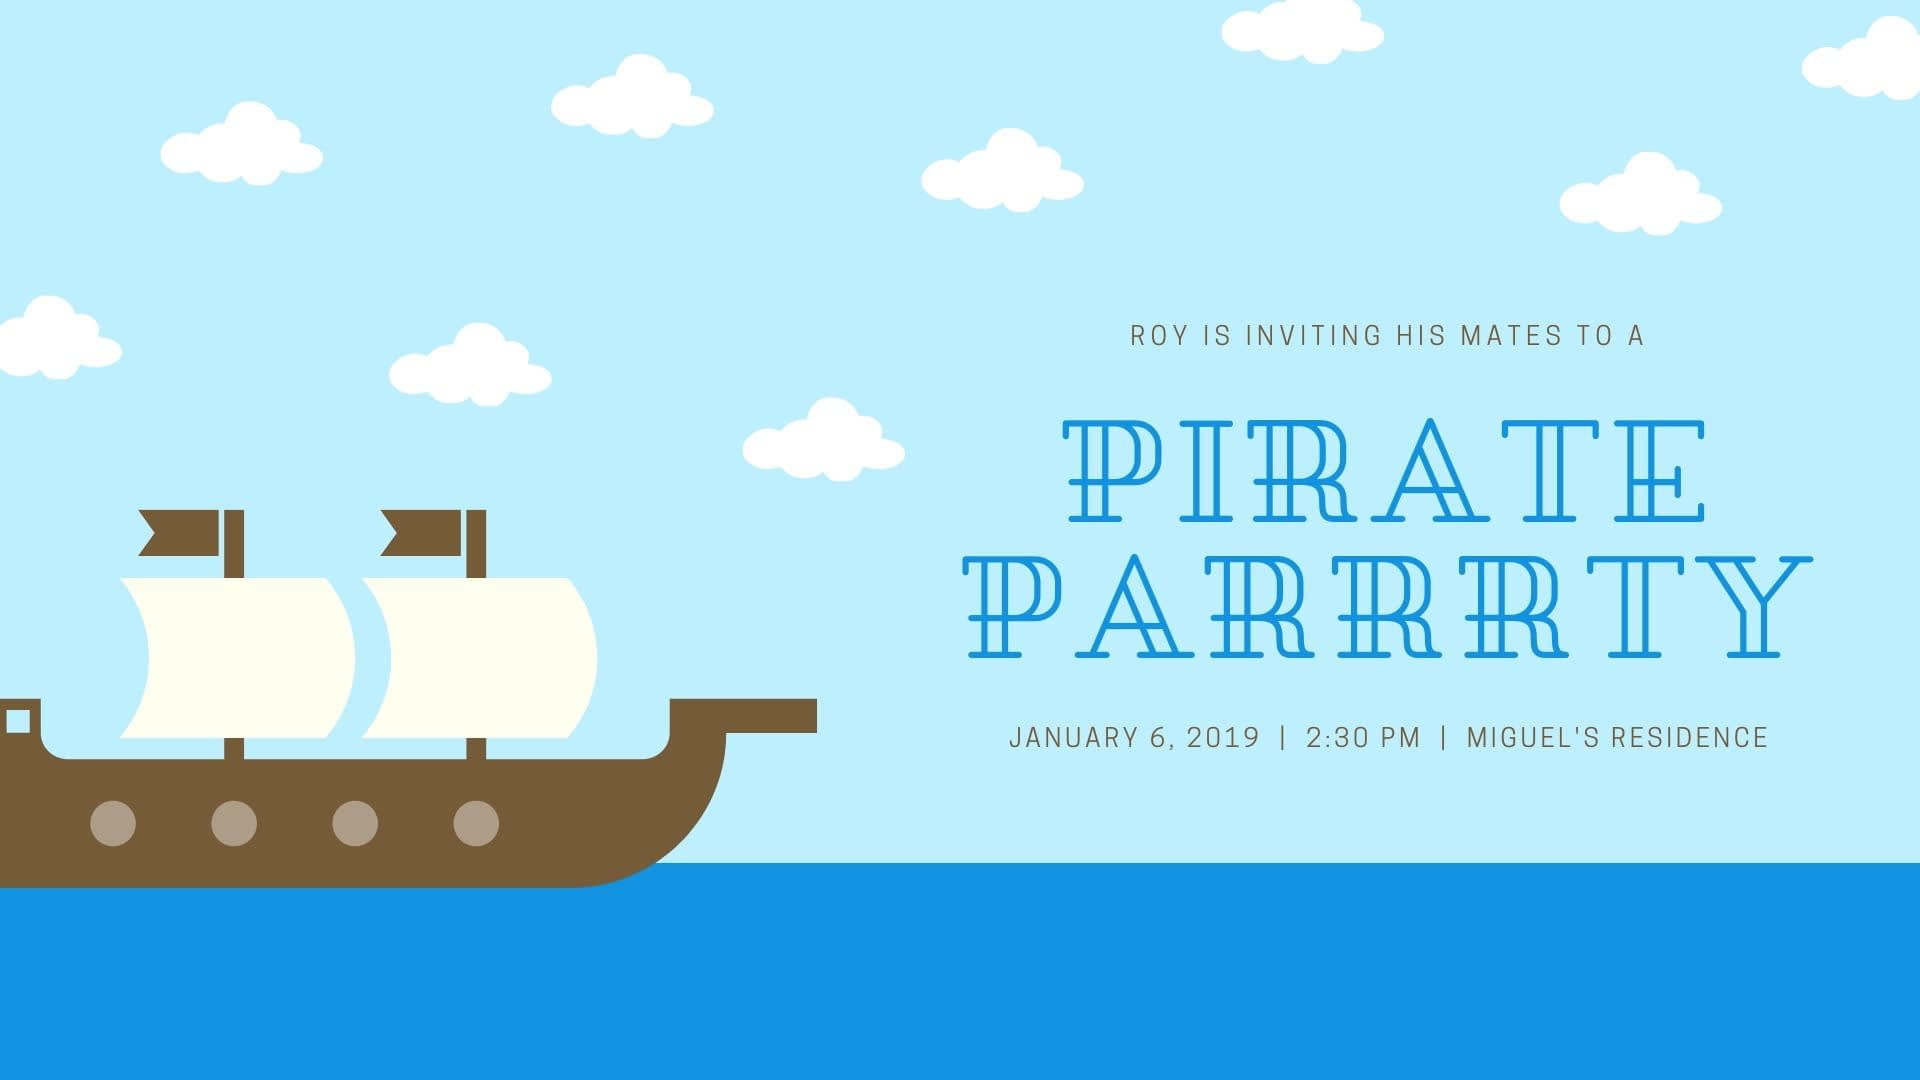 Invitation is blue sky with clouds and pirate ship and says Roy is inviting his mates to a pirate parrrty and then has date, time, location.